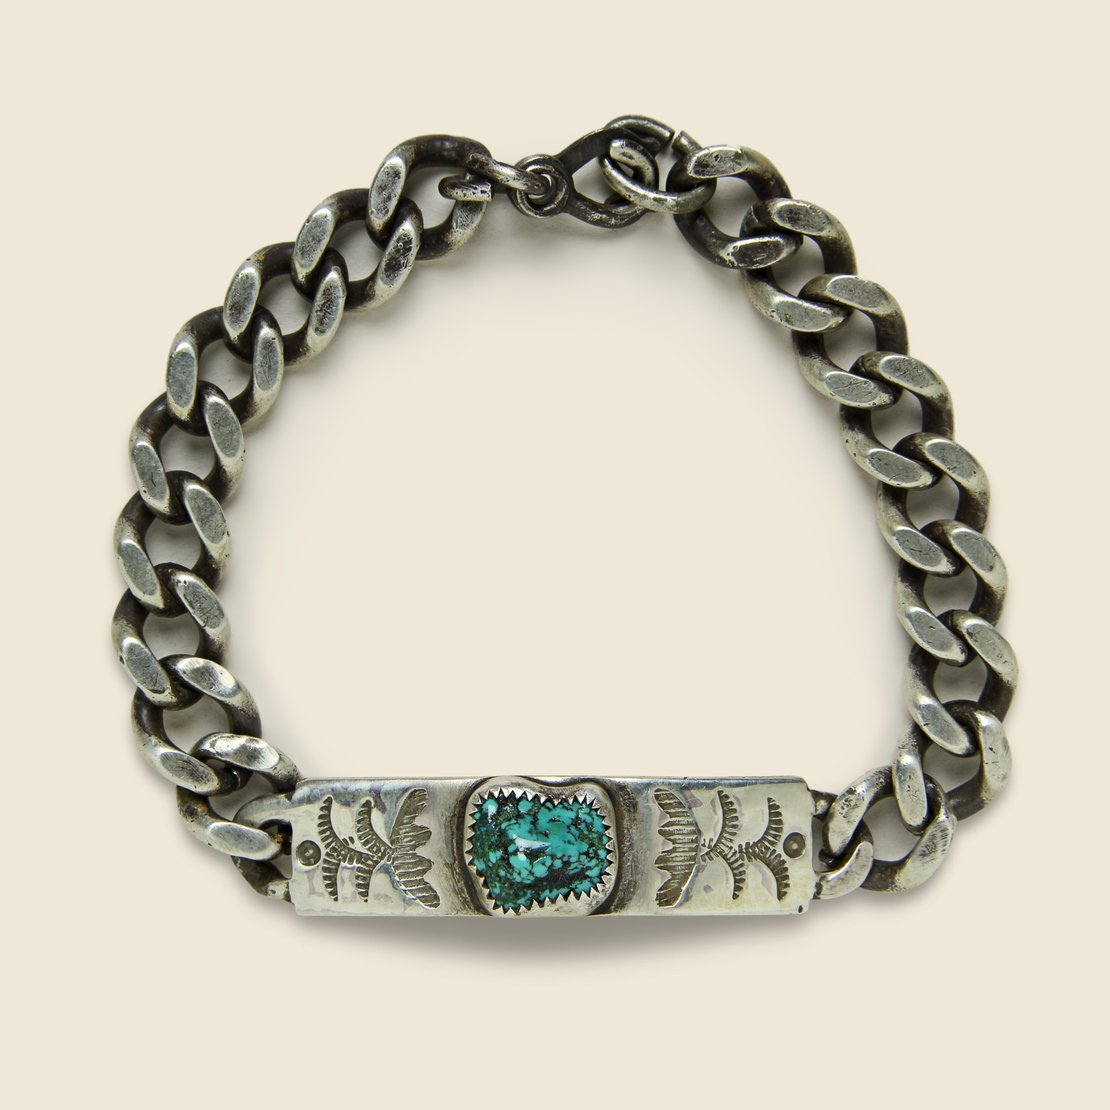 MANO Signature Bracelet - Sterling Silver/Turquoise